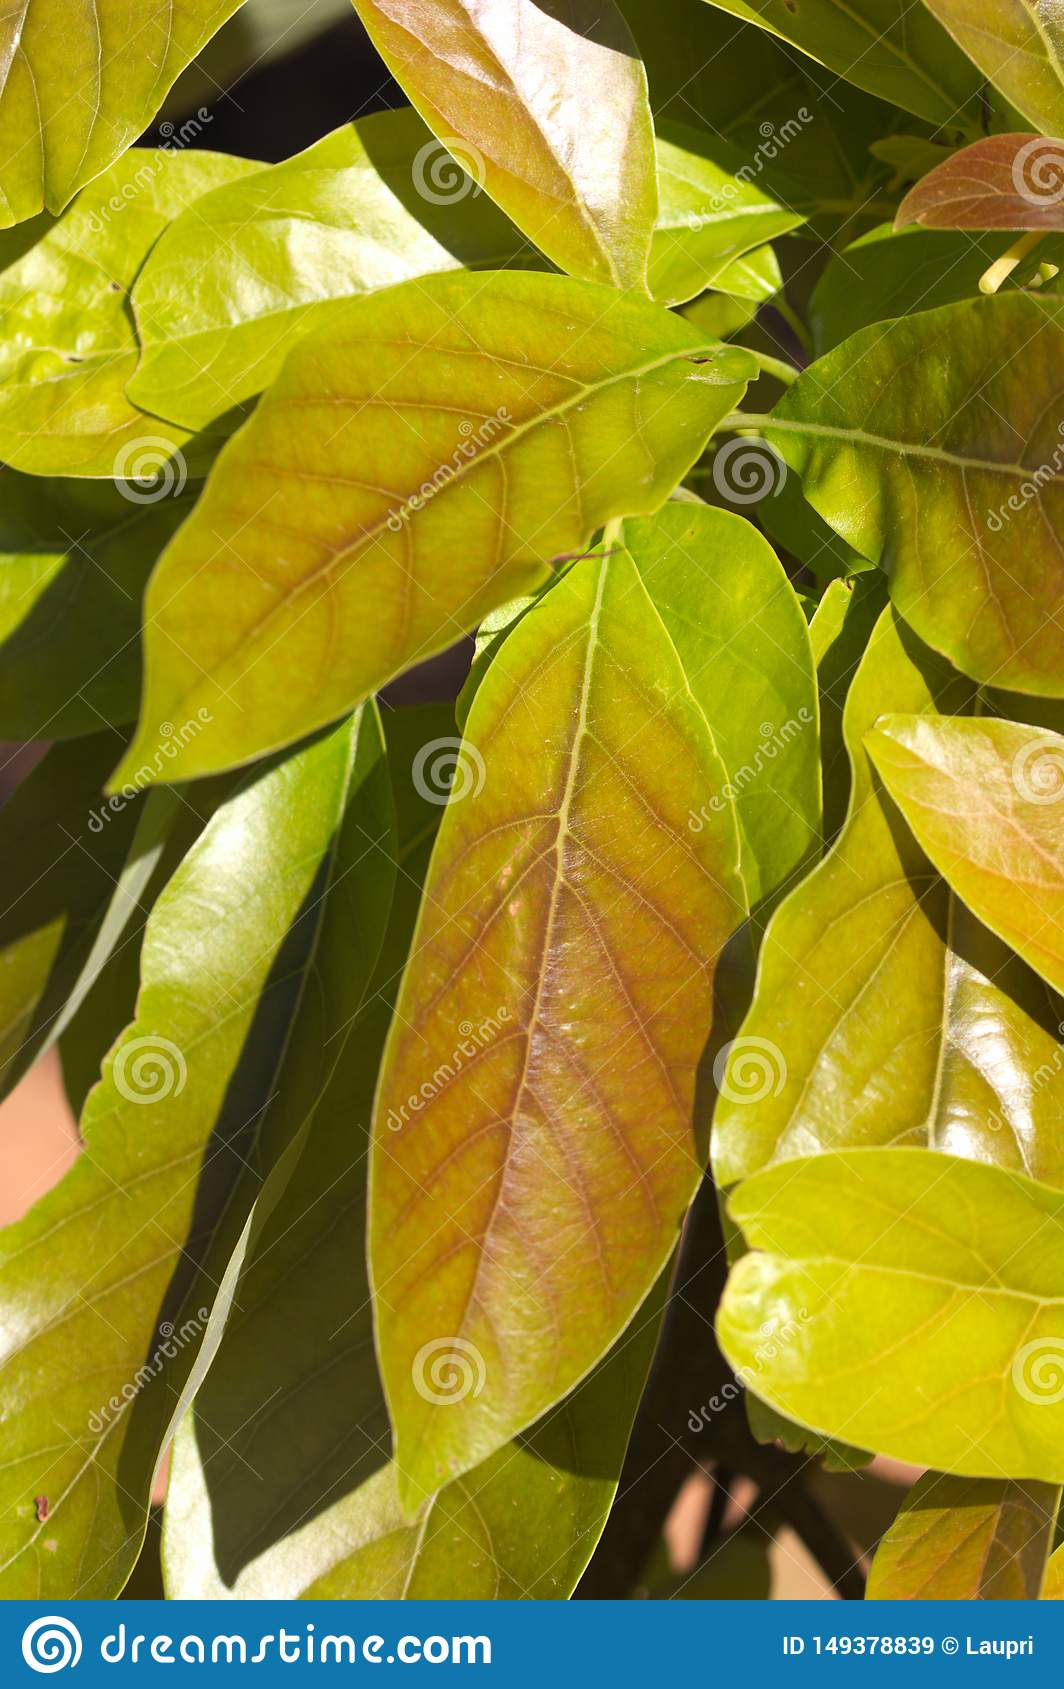 Close-up of some leaves on the branch of a avocado